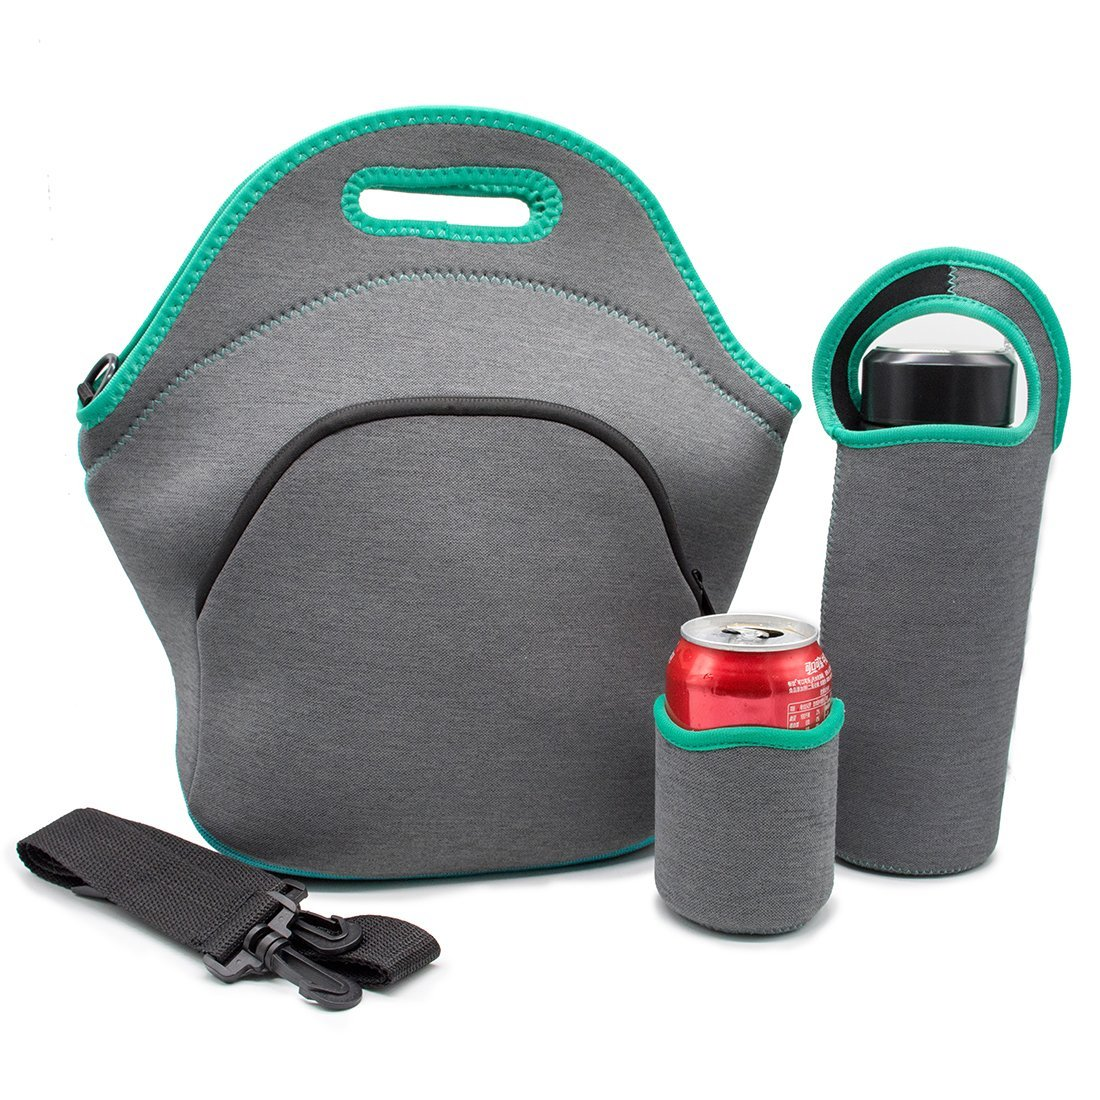 Insulated Lunch Bag Set with Tote,Bottle Sleeve,1 Can Insulators & Adjustable Crossbody Shoulder Strap - Large Neoprene Lunch Bags for Women, Kids and Men,Washable,Reusable